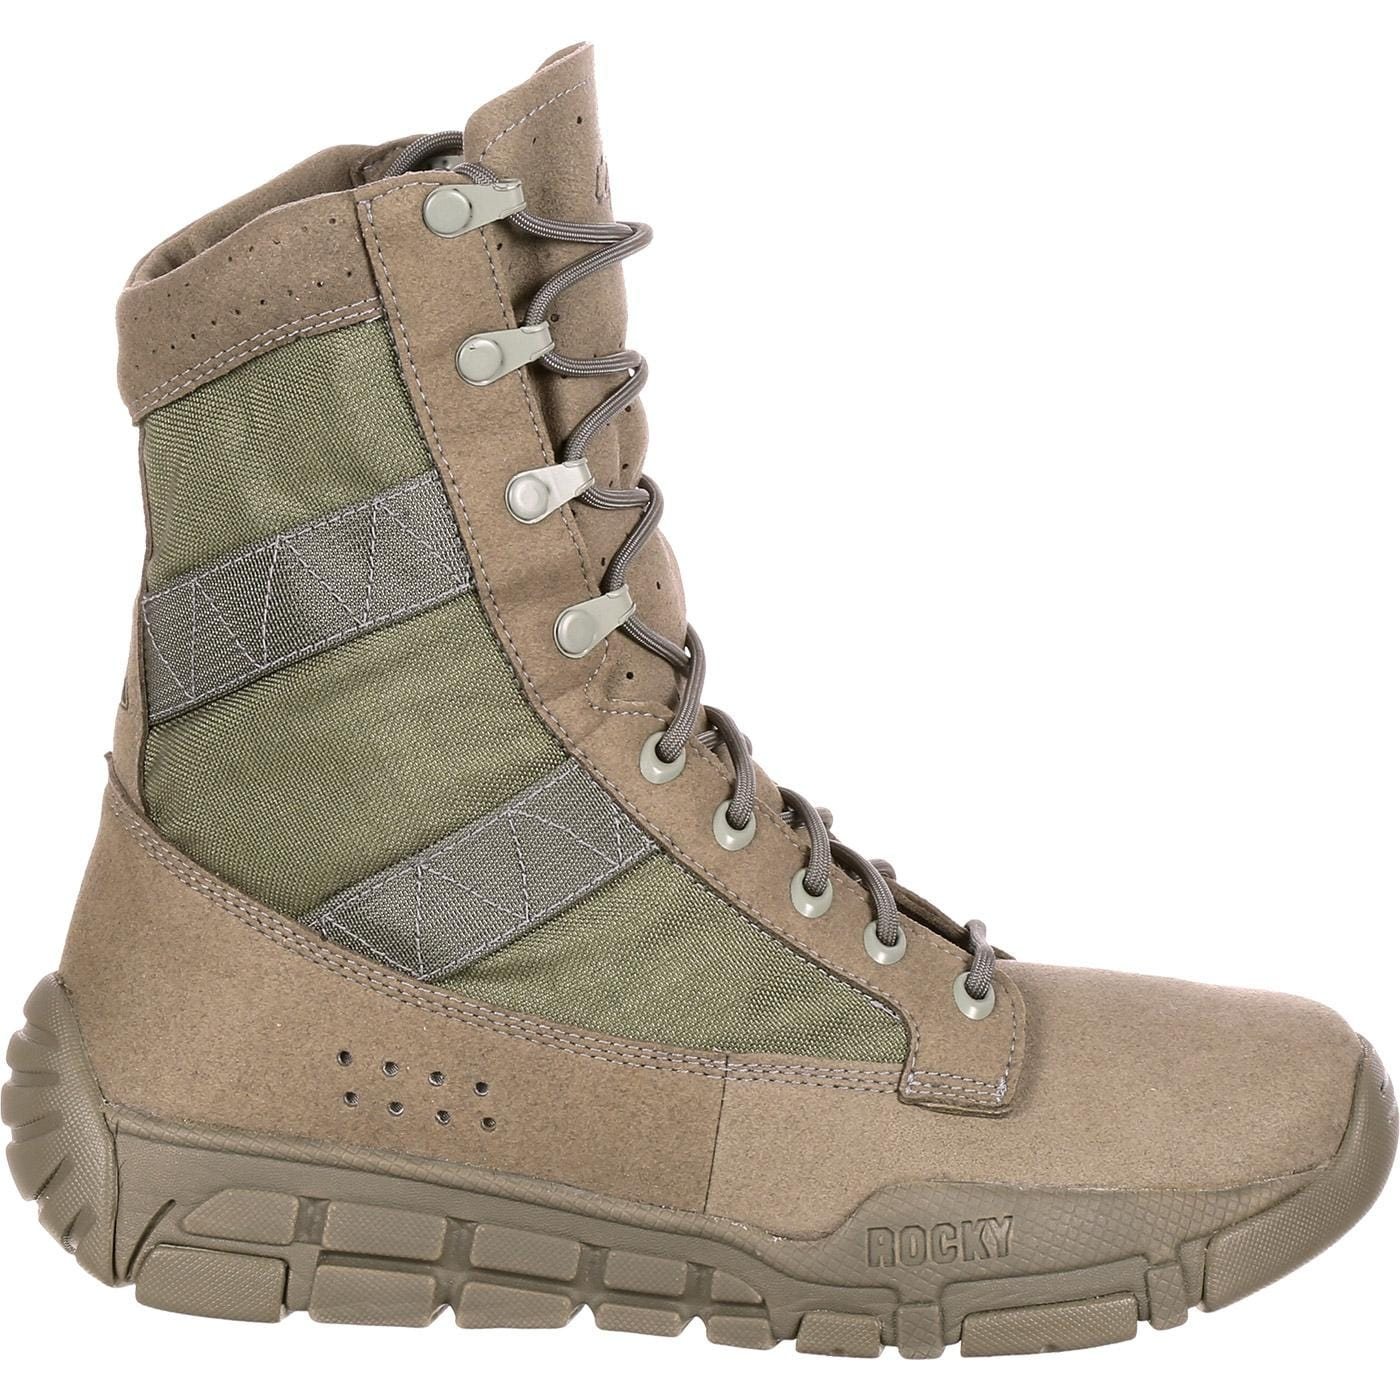 30e64a439843c Rocky C4T Trainer Lightweight Military Duty Boot, FQ0001073